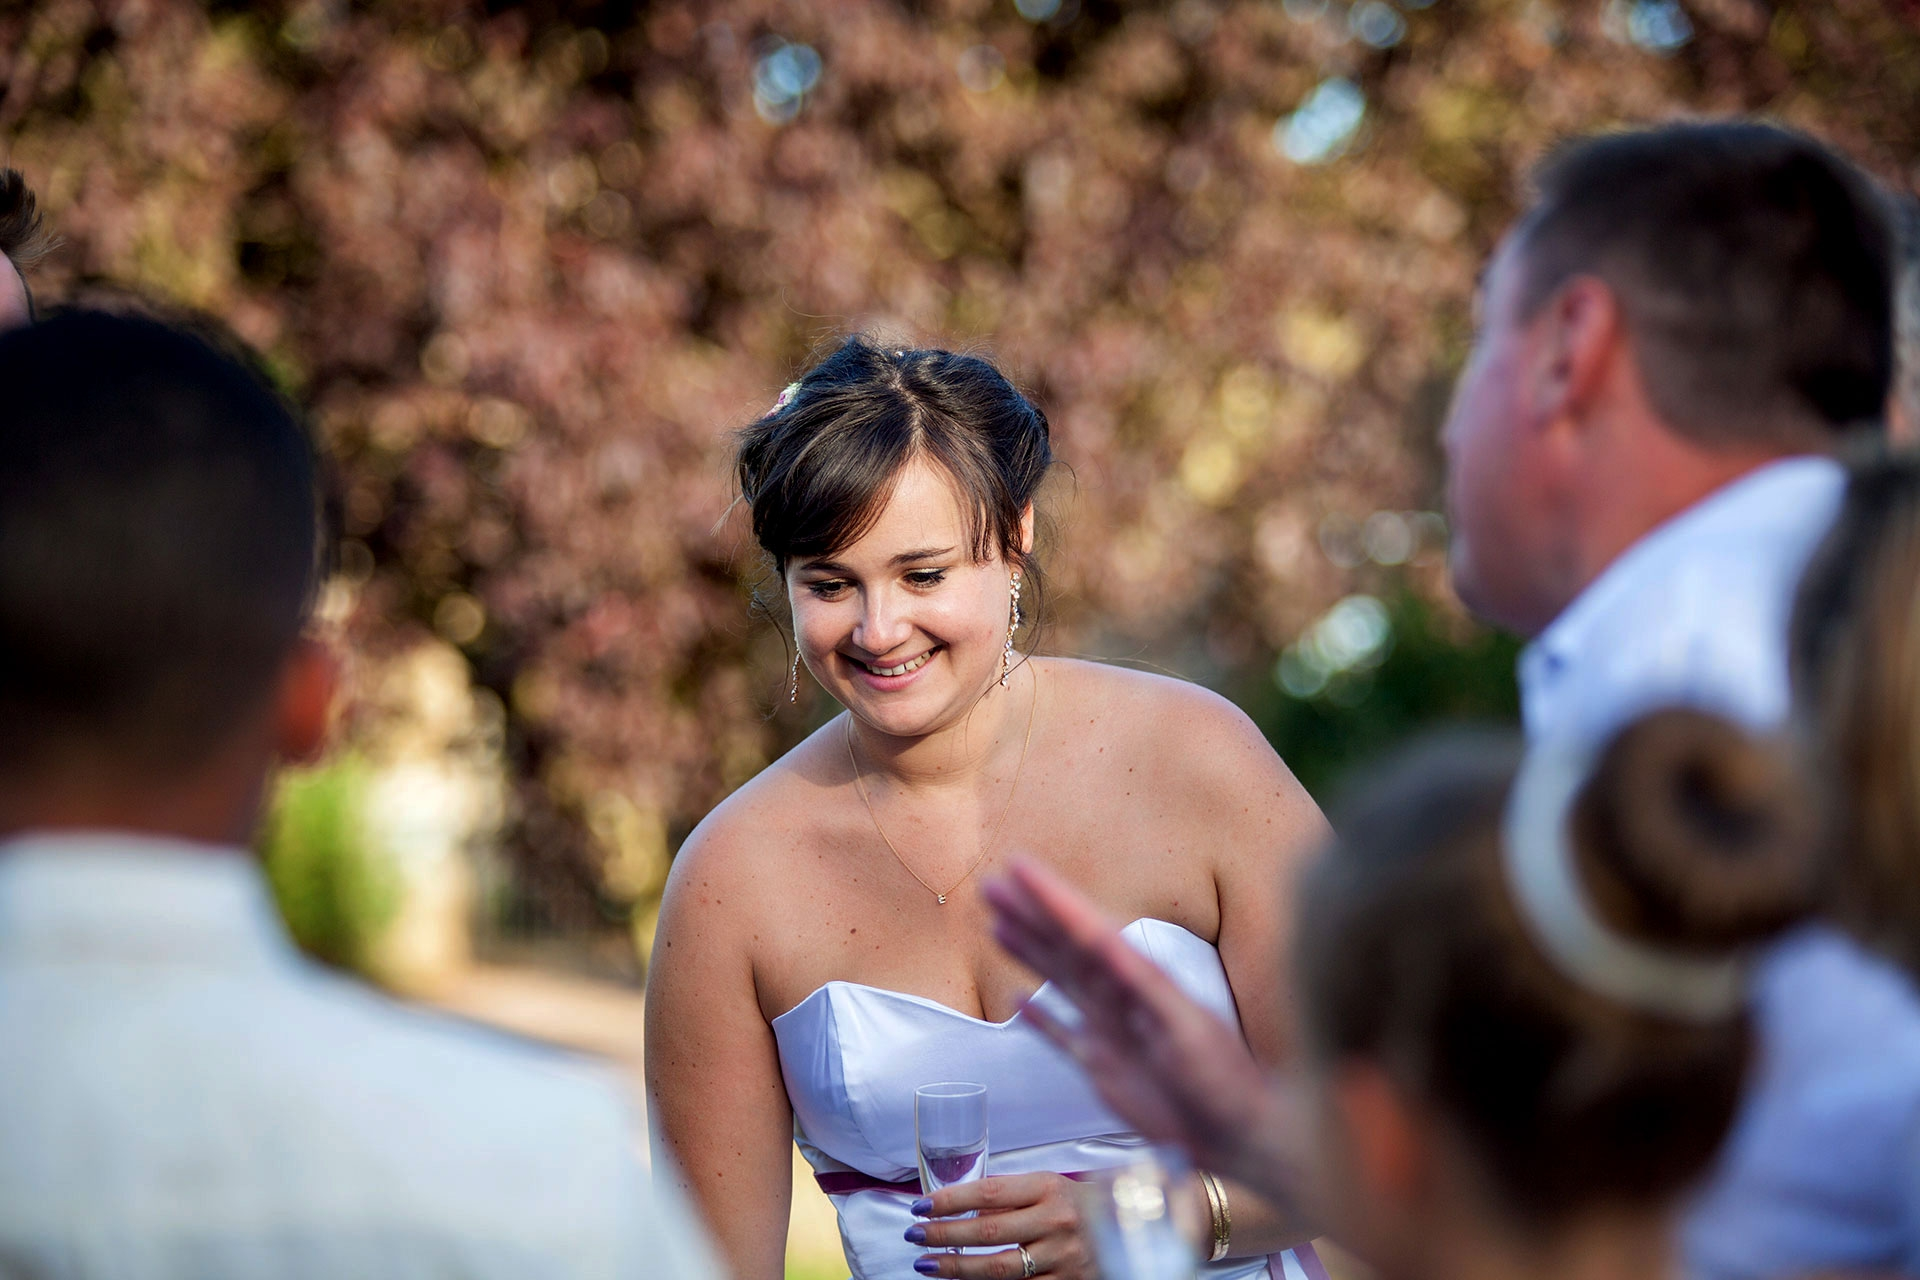 mariage-france-philippe-41